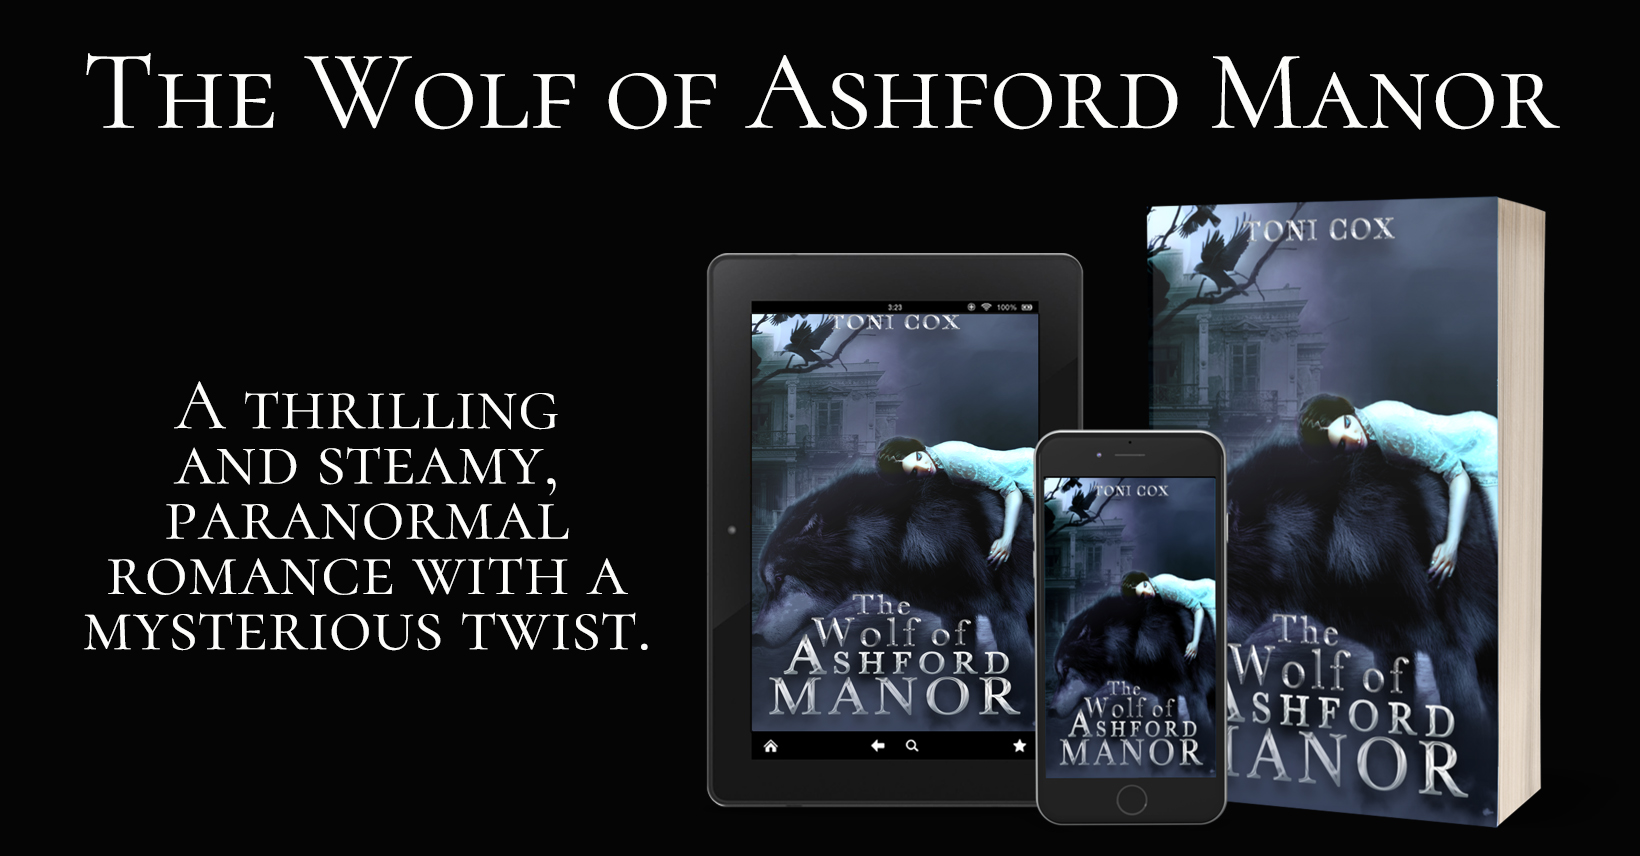 Author Release Announcement! The Wolf of Ashford Manor by Author Toni Cox